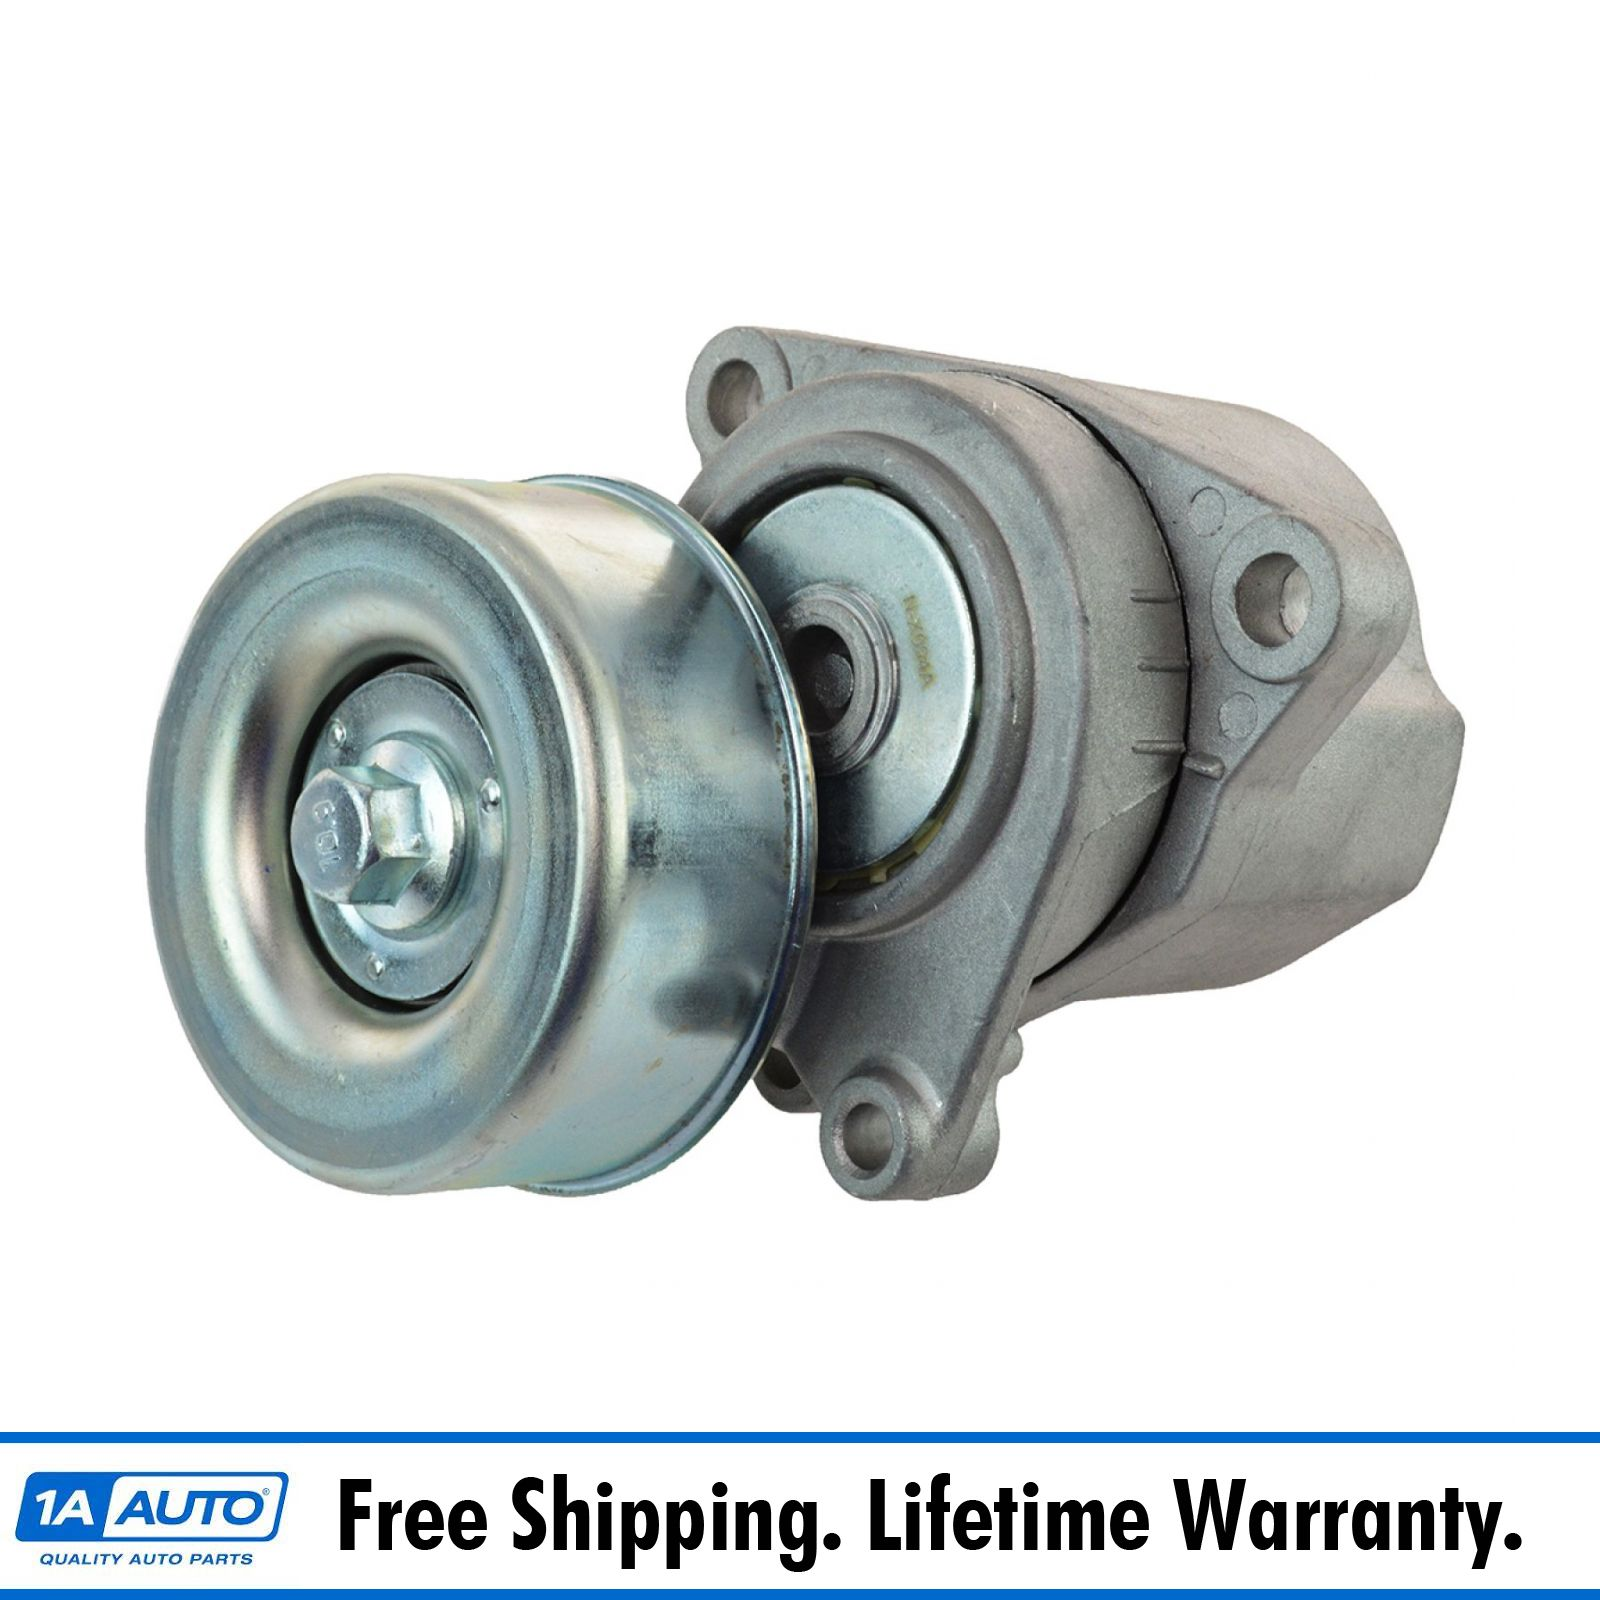 Serpentine Belt Tensioner with Pulley For Nissan Altima ...